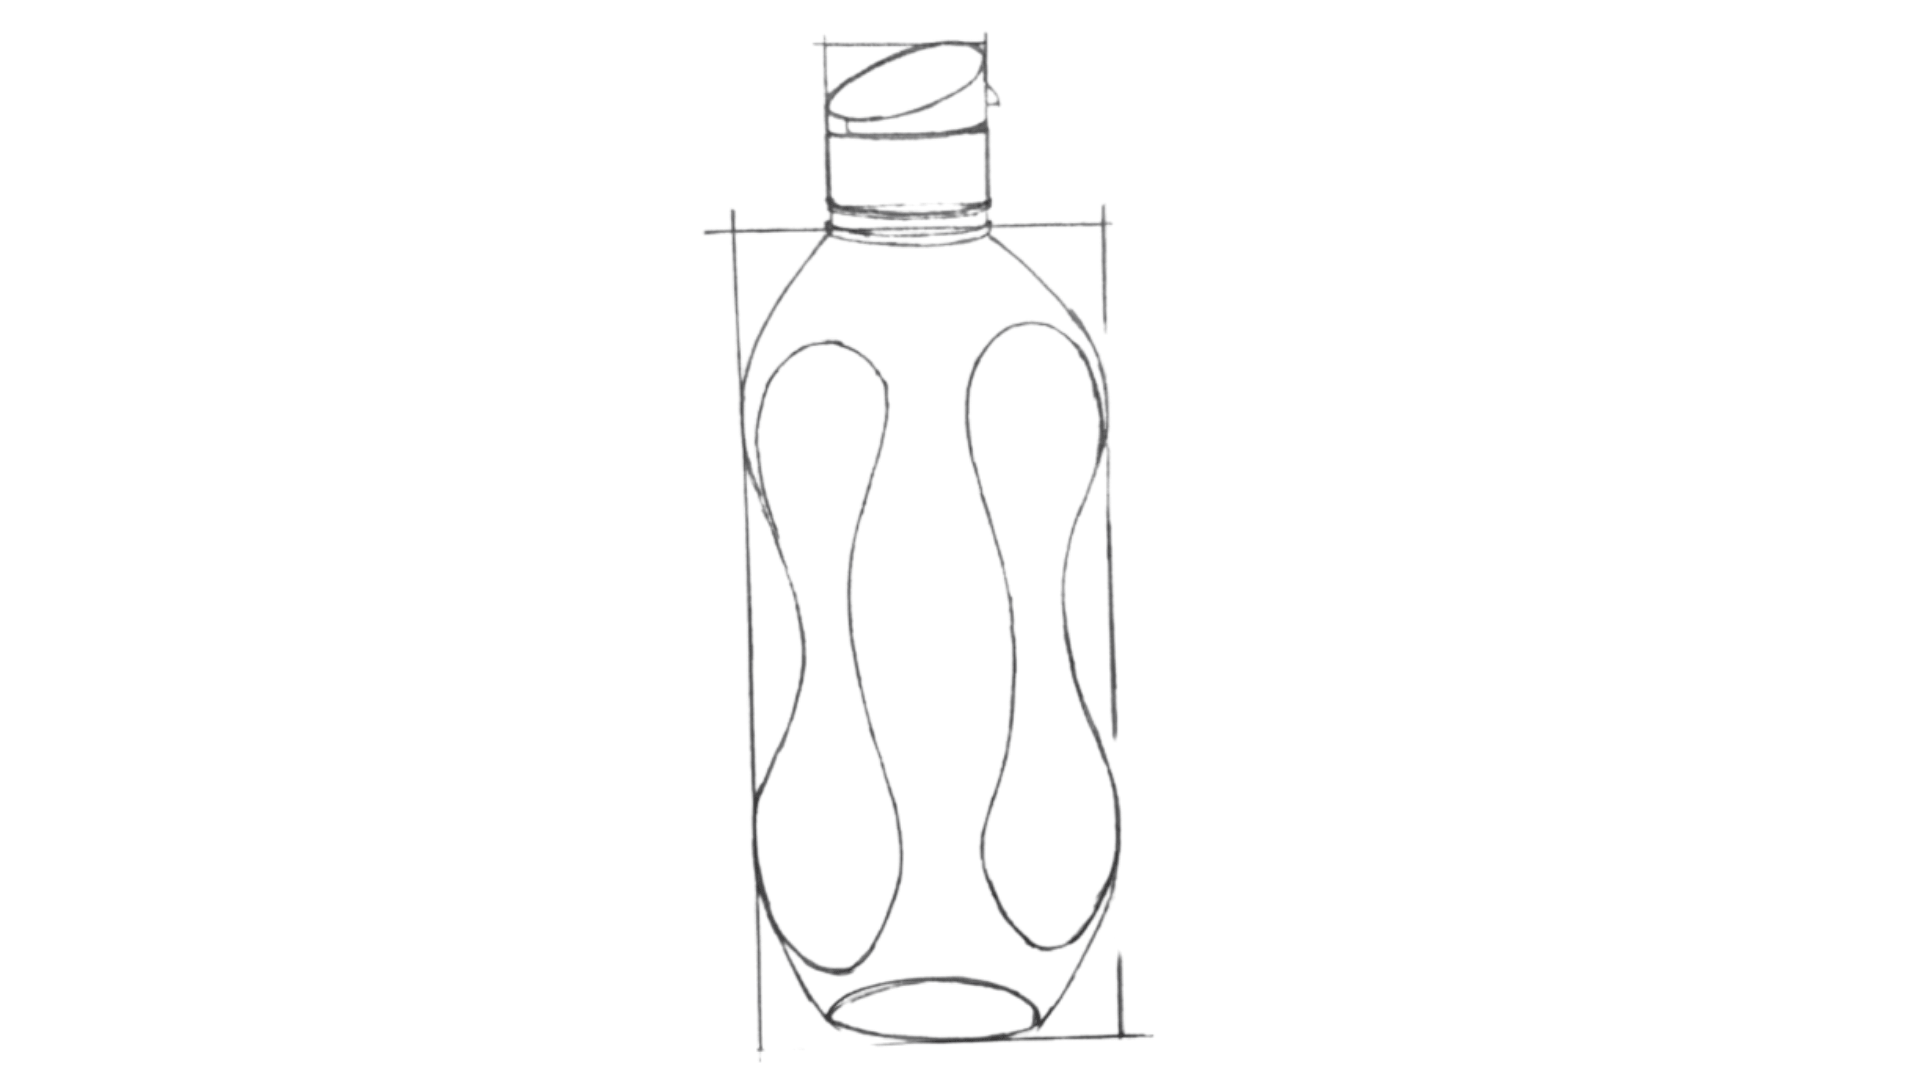 How To Draw a Bottle Step 4